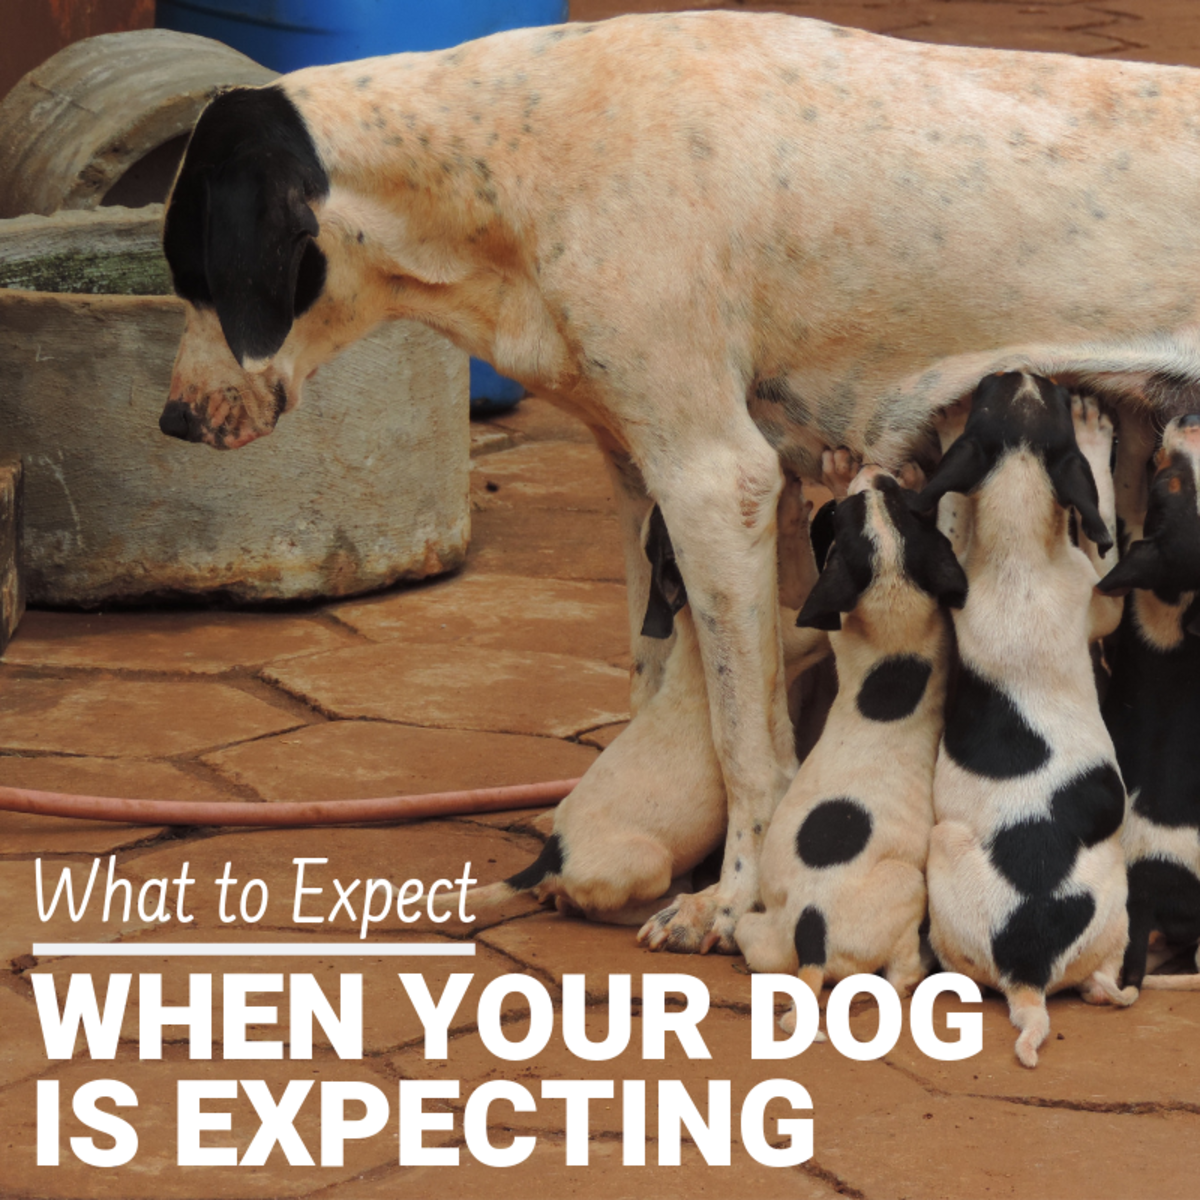 If your dog is pregnant or trying to conceive, learn about the puppy development and birthing process so you know how to prepare and what to expect.